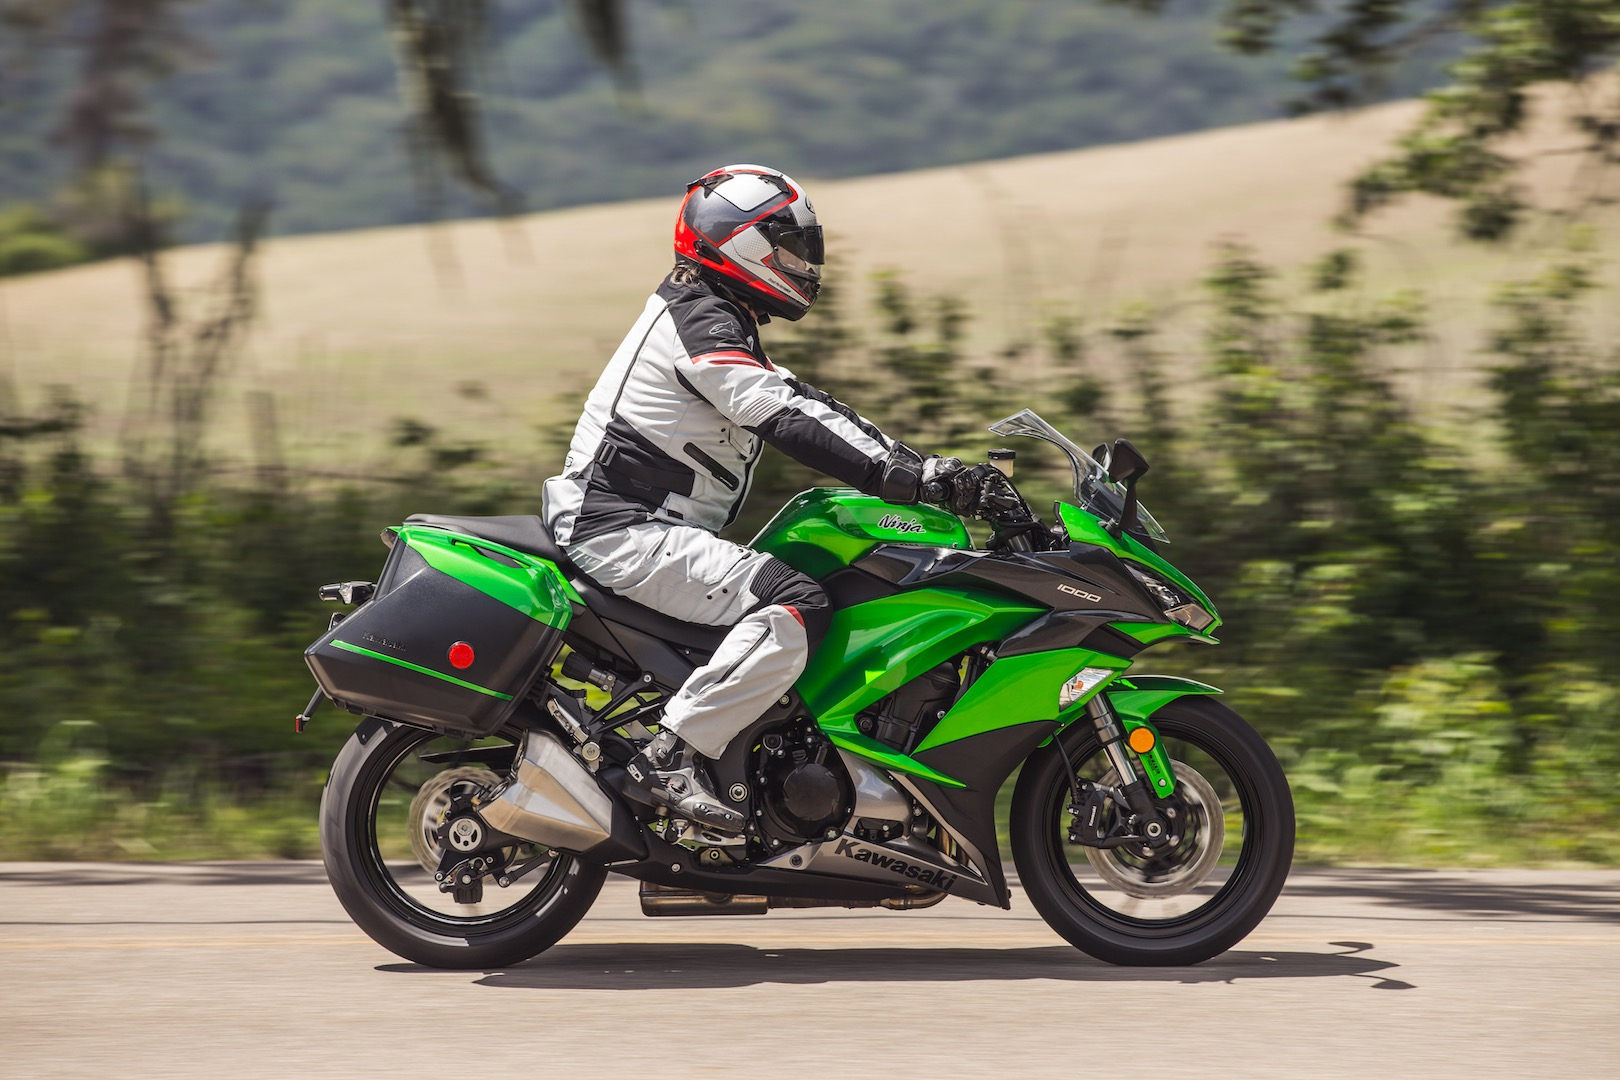 2017 Kawasaki Ninja 1000 Abs Review 14 Fast Facts